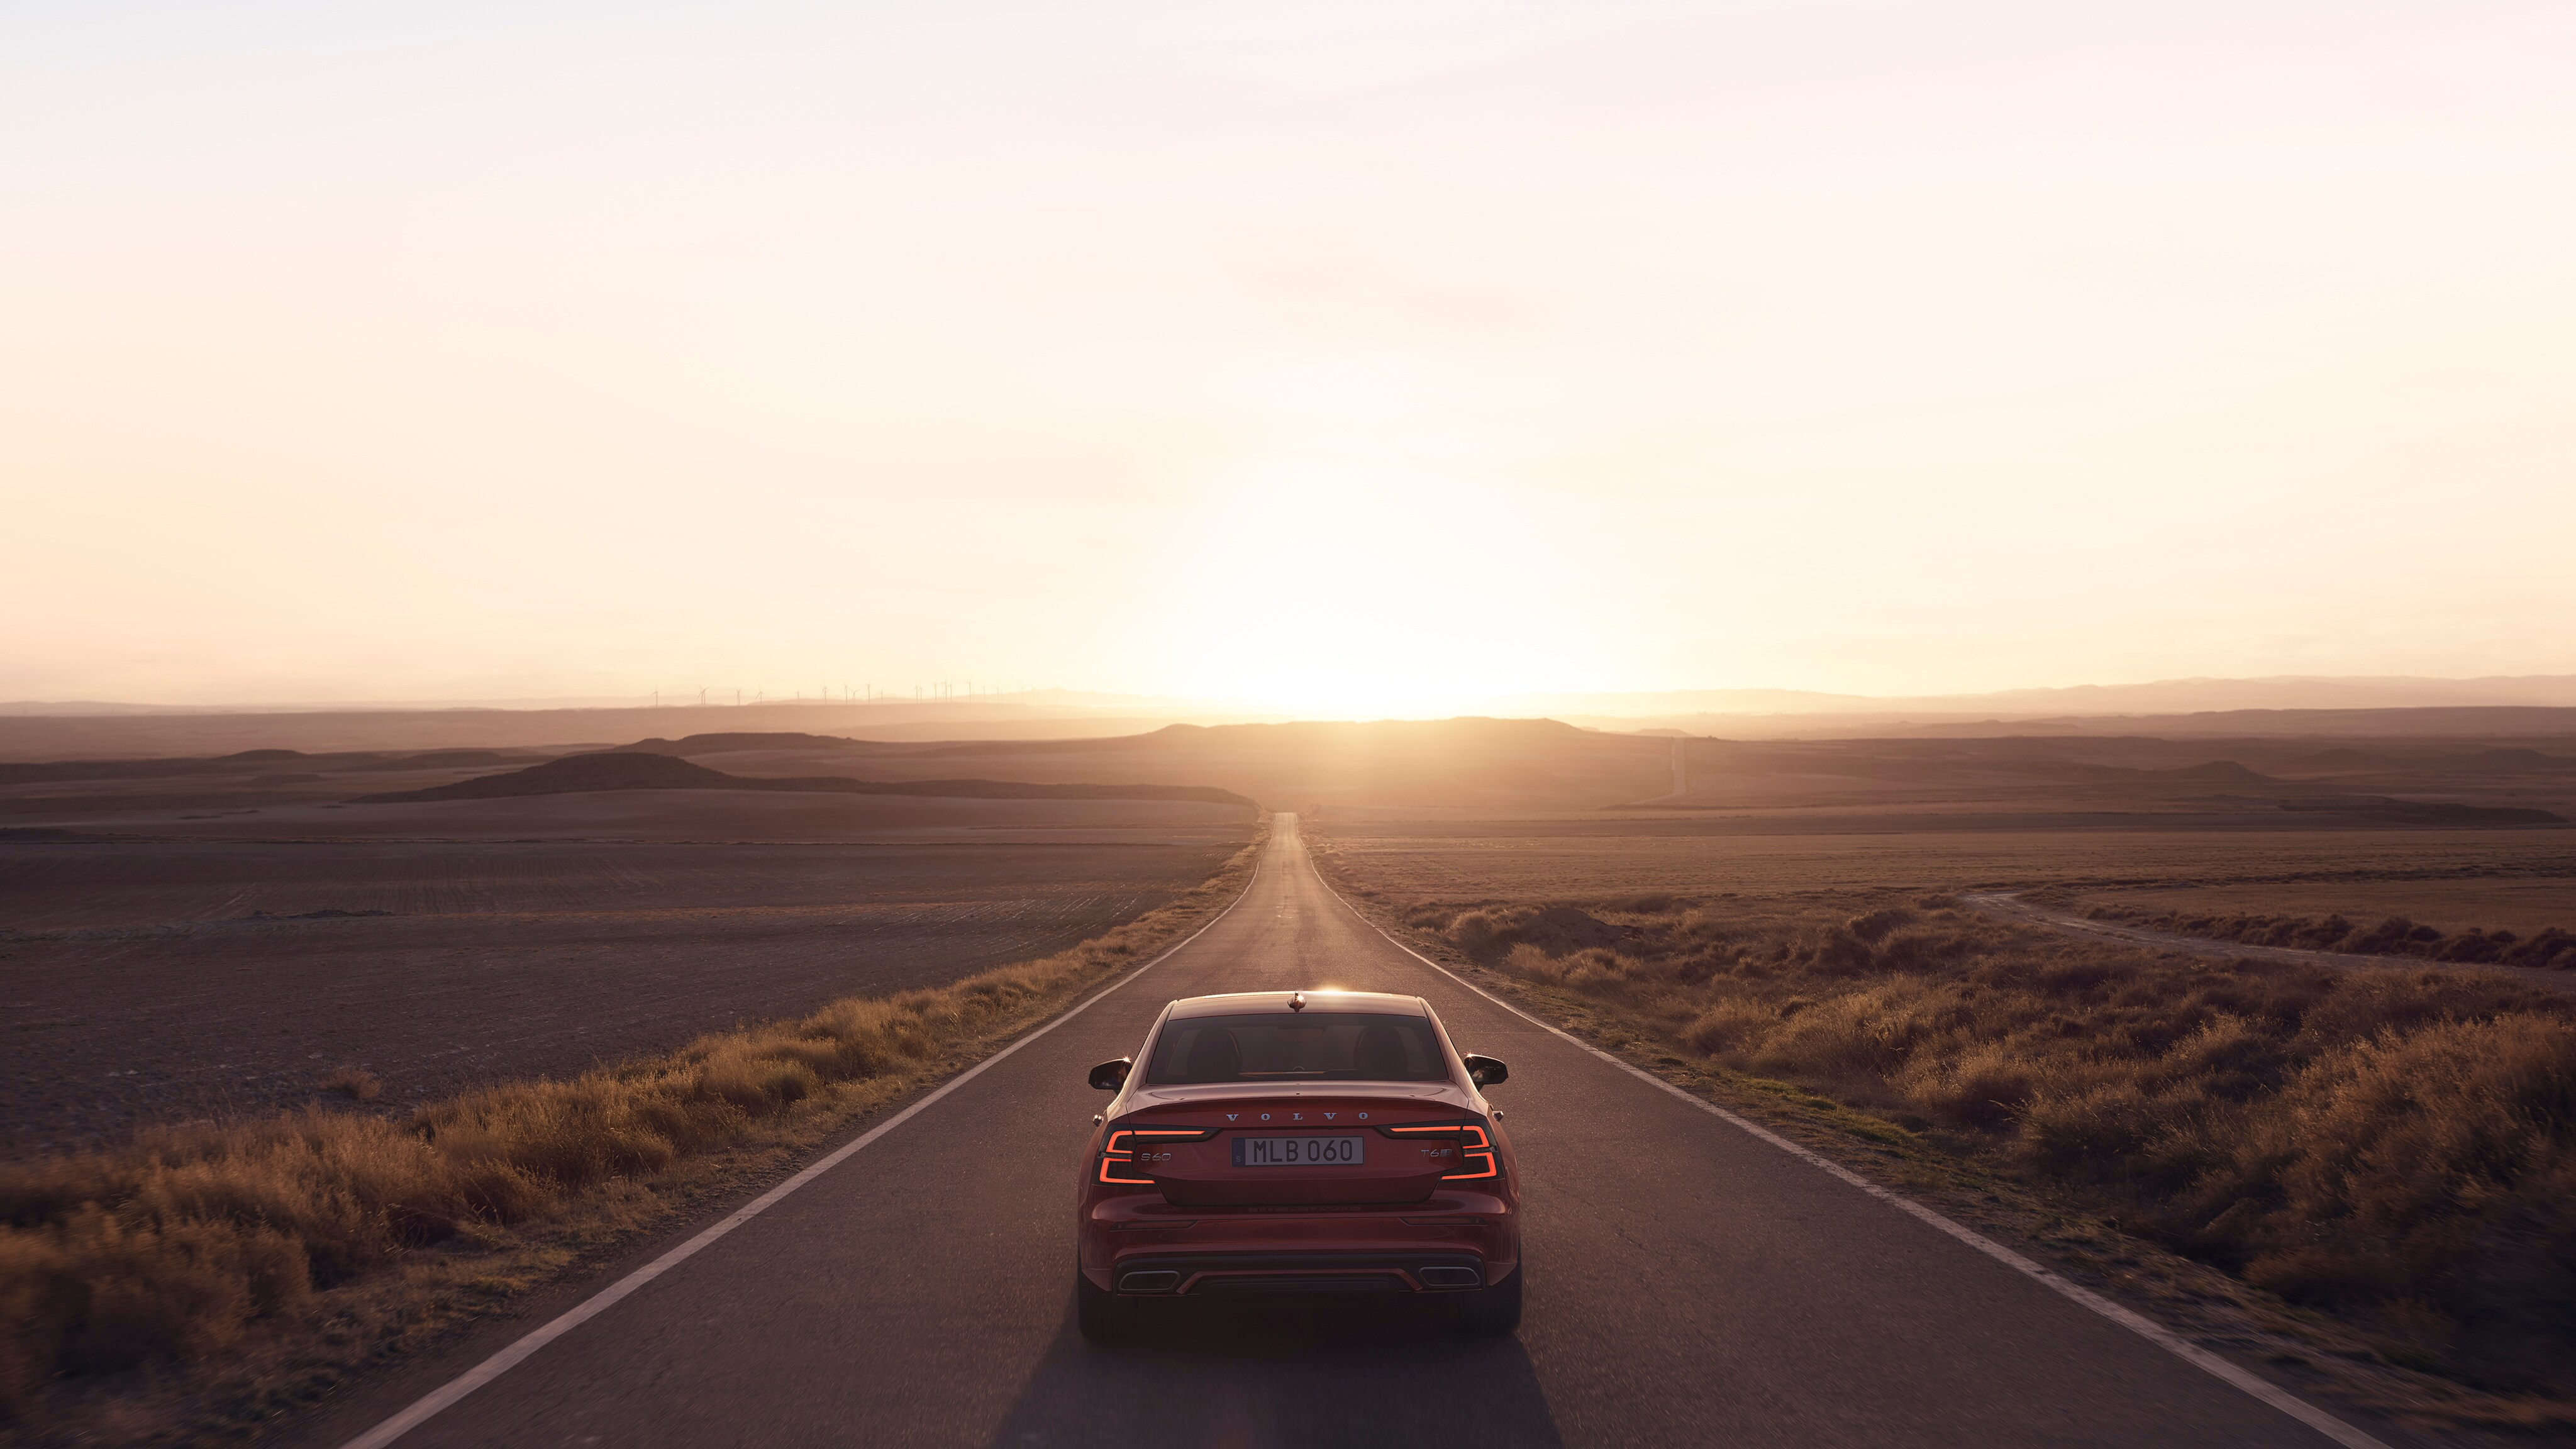 A stretch of deserted country road opens up before the new Volvo S60 R-Design